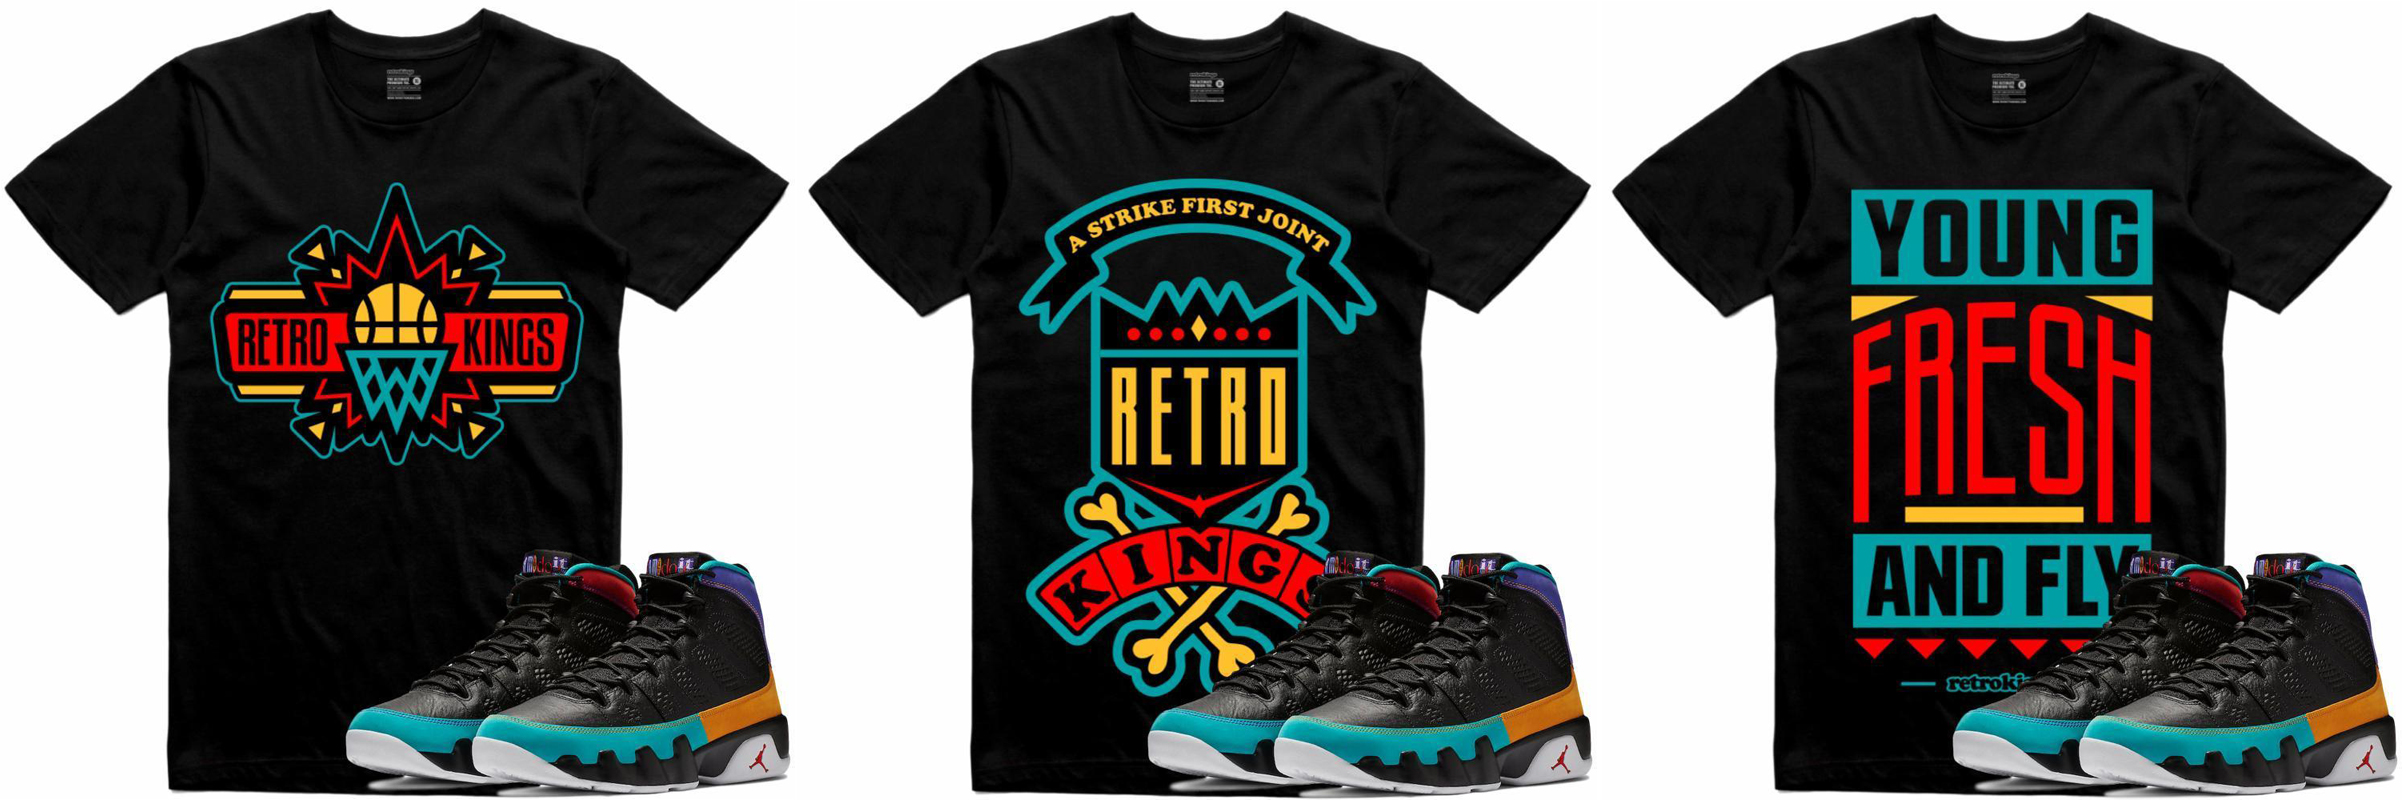 ac5648c4b1b4 Jordan 9 Dream It Do It Sneaker Tee Shirts